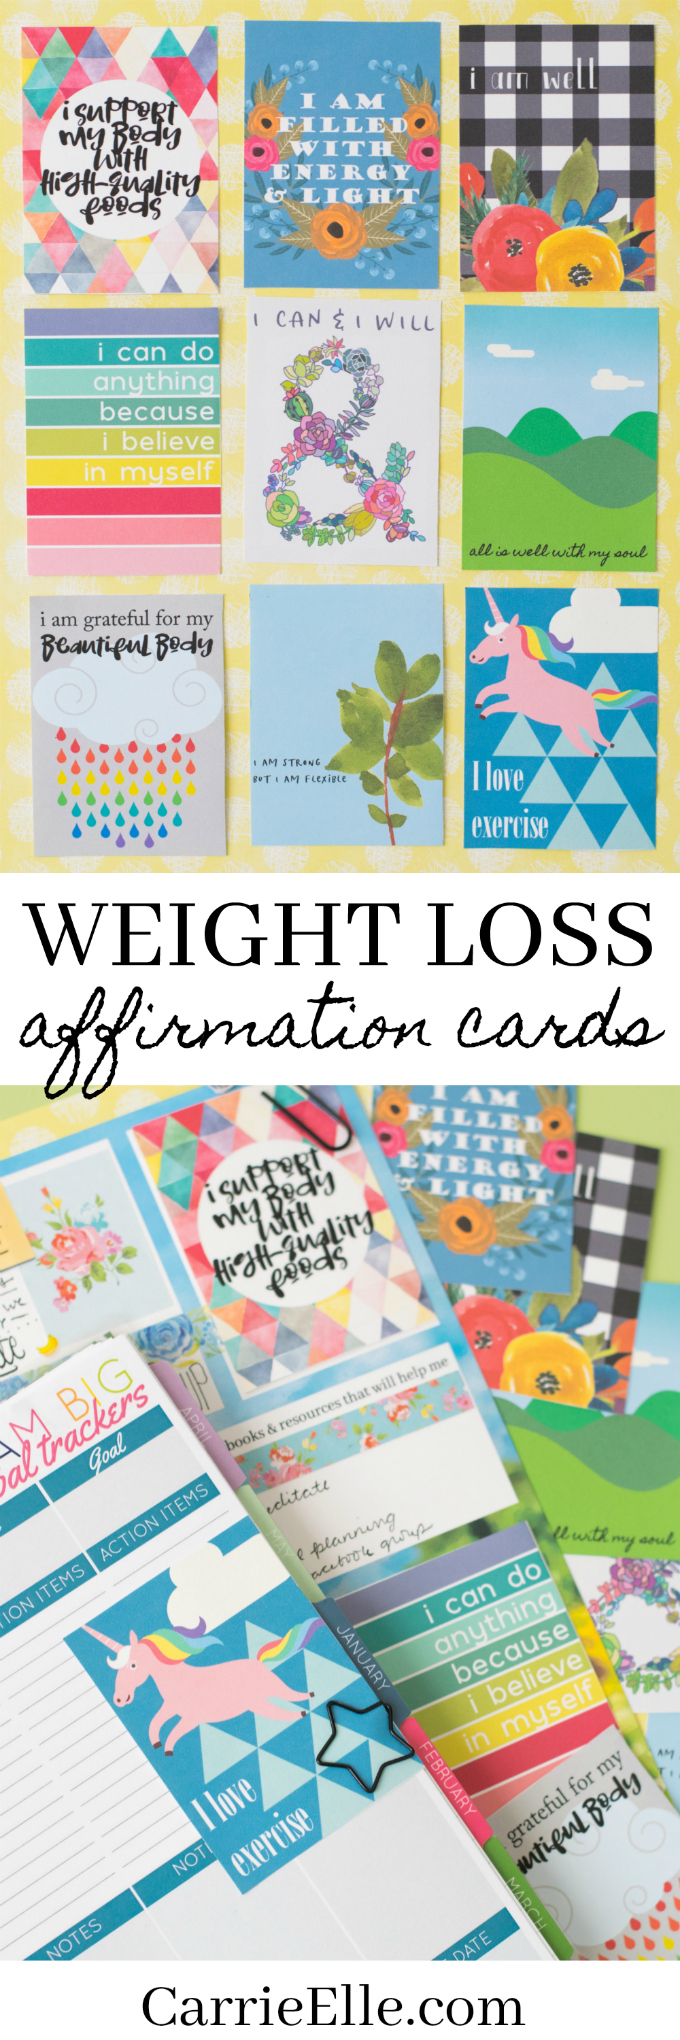 photo relating to Free Printable Affirmation Cards named Incredibly Printable Confirmation Playing cards - Carrie Elle